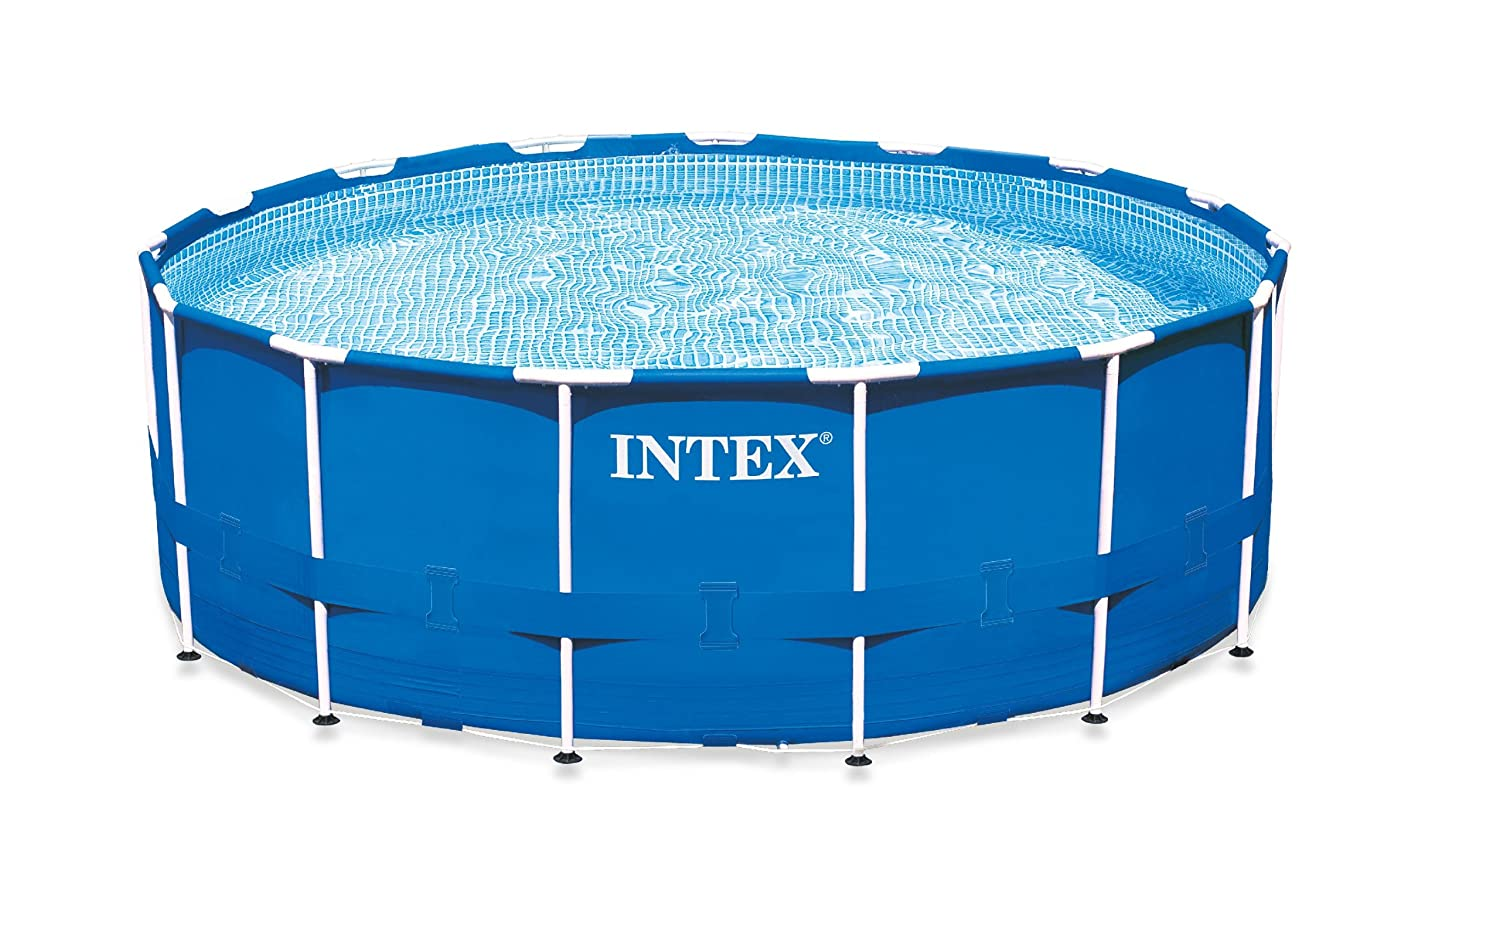 Intex 15 foot by 42 inch round metal frame pool set review for Alberca intex redonda